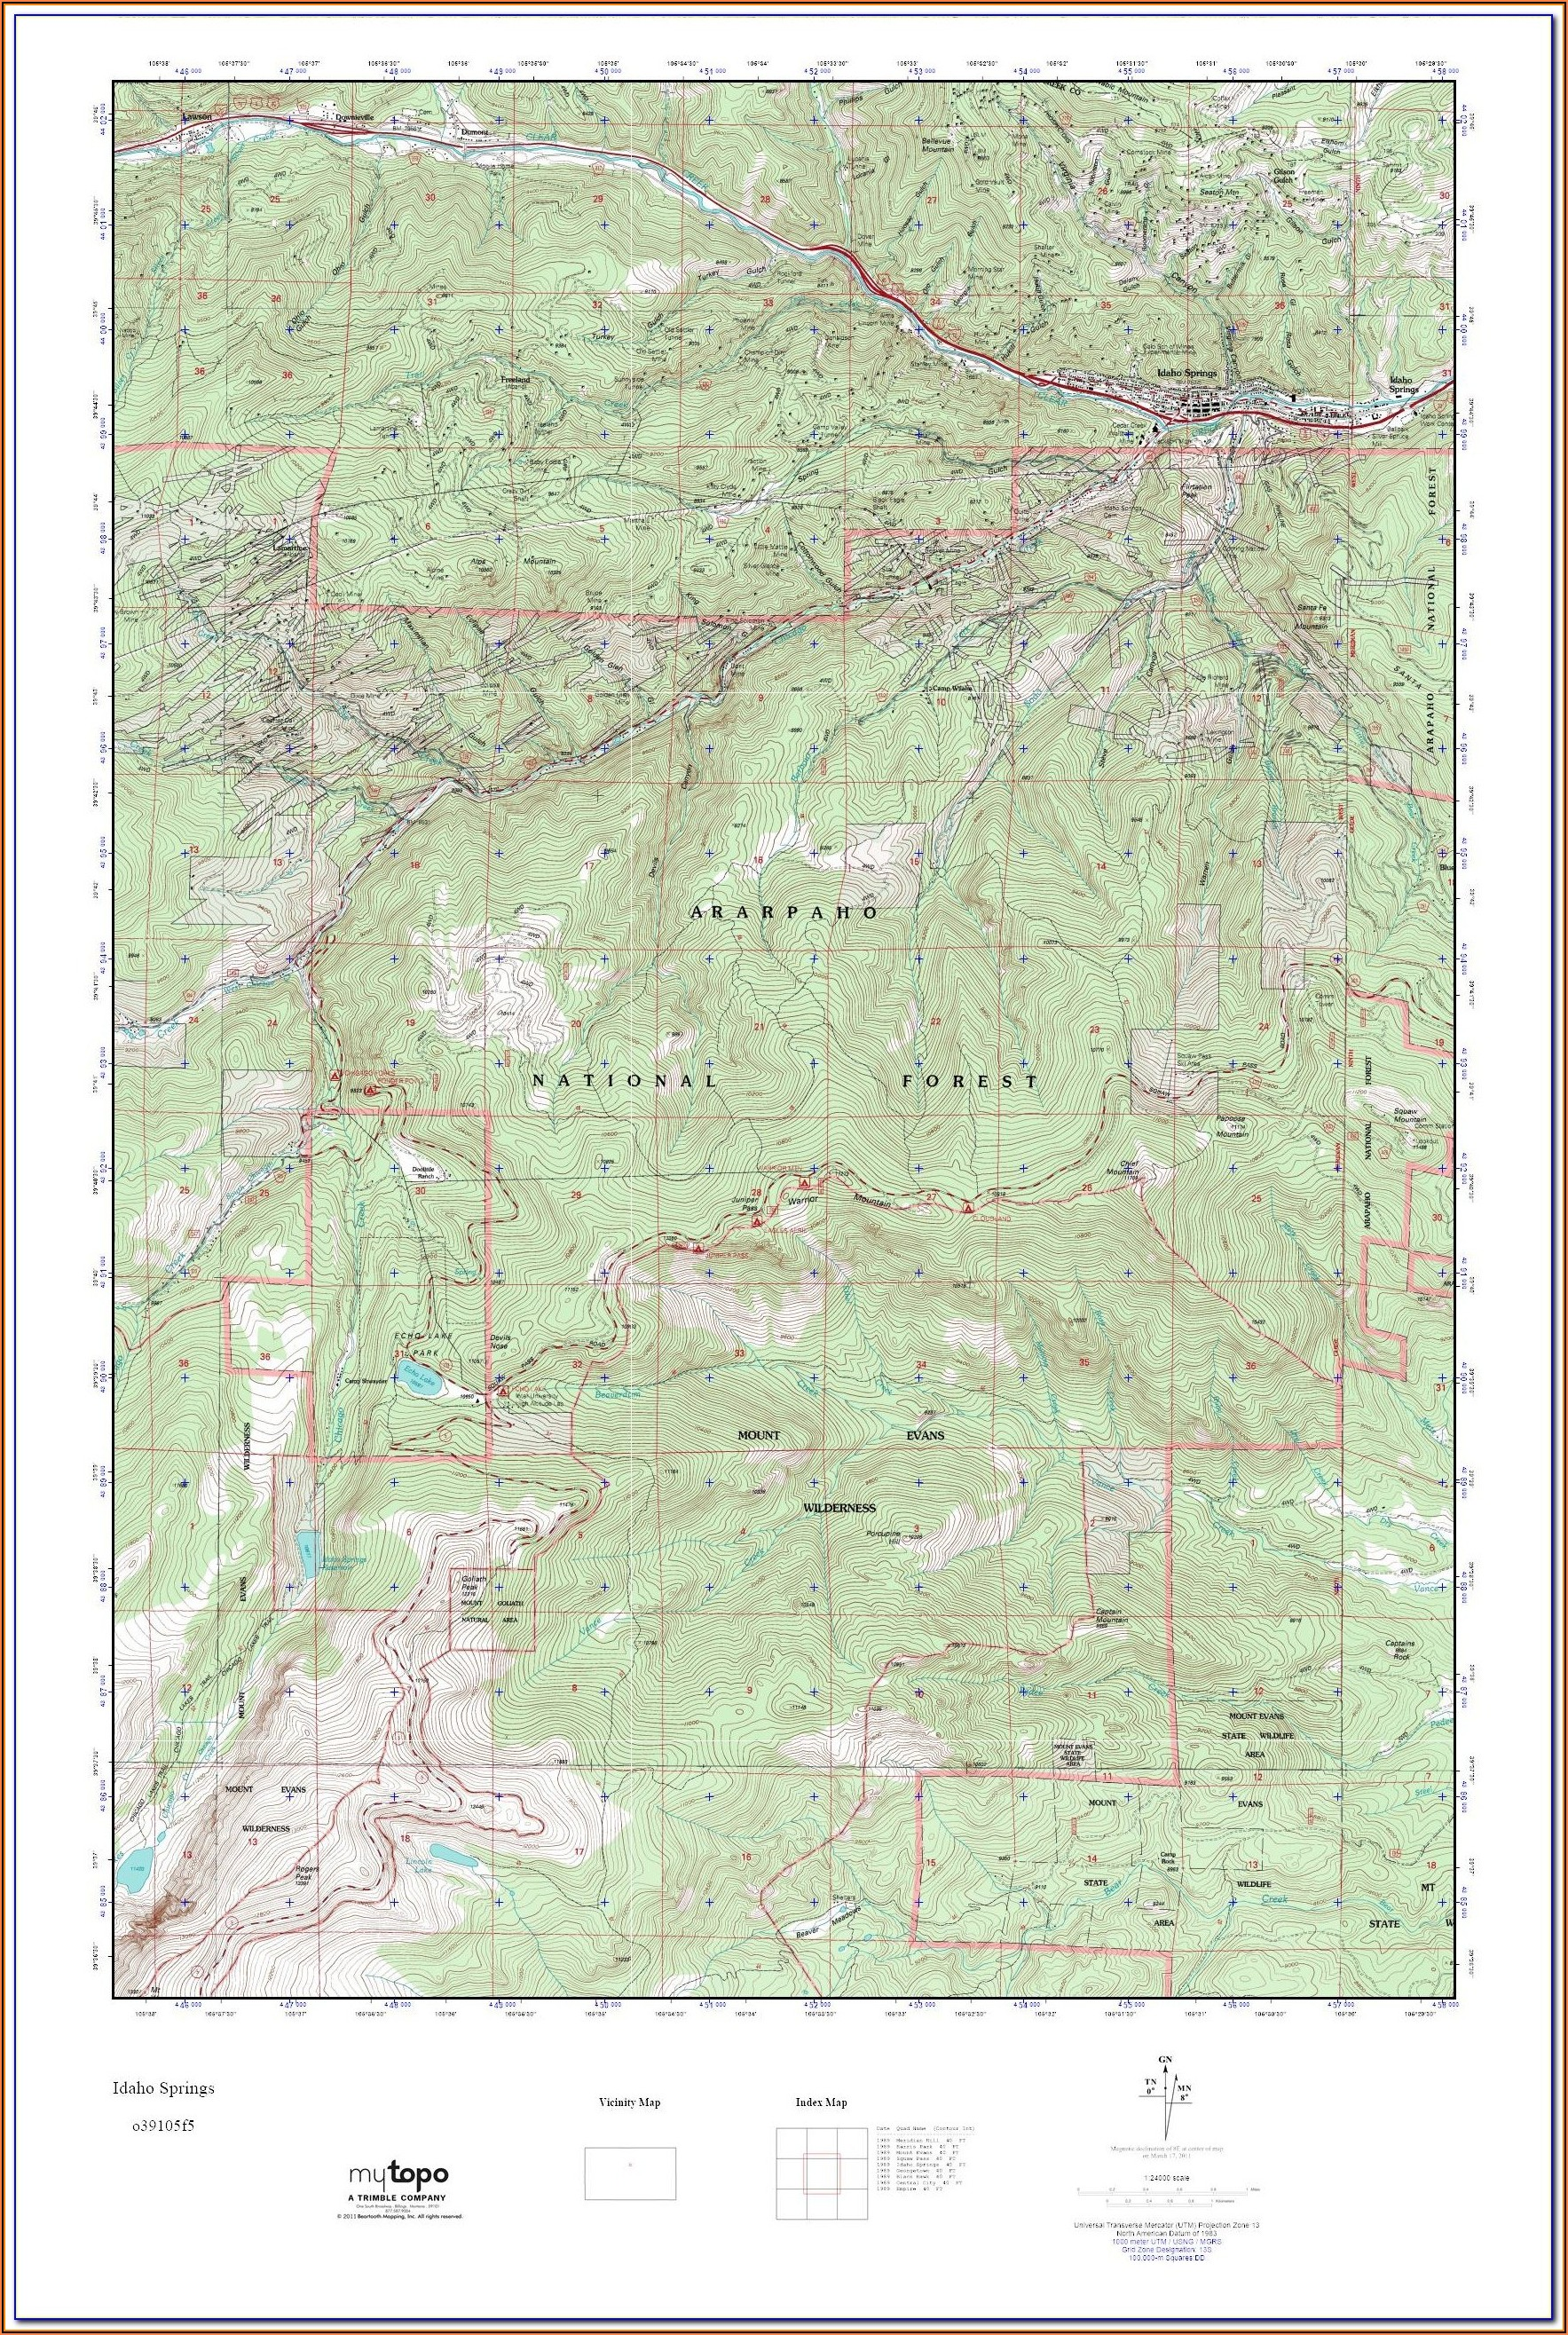 Colorado Hunting Topo Maps